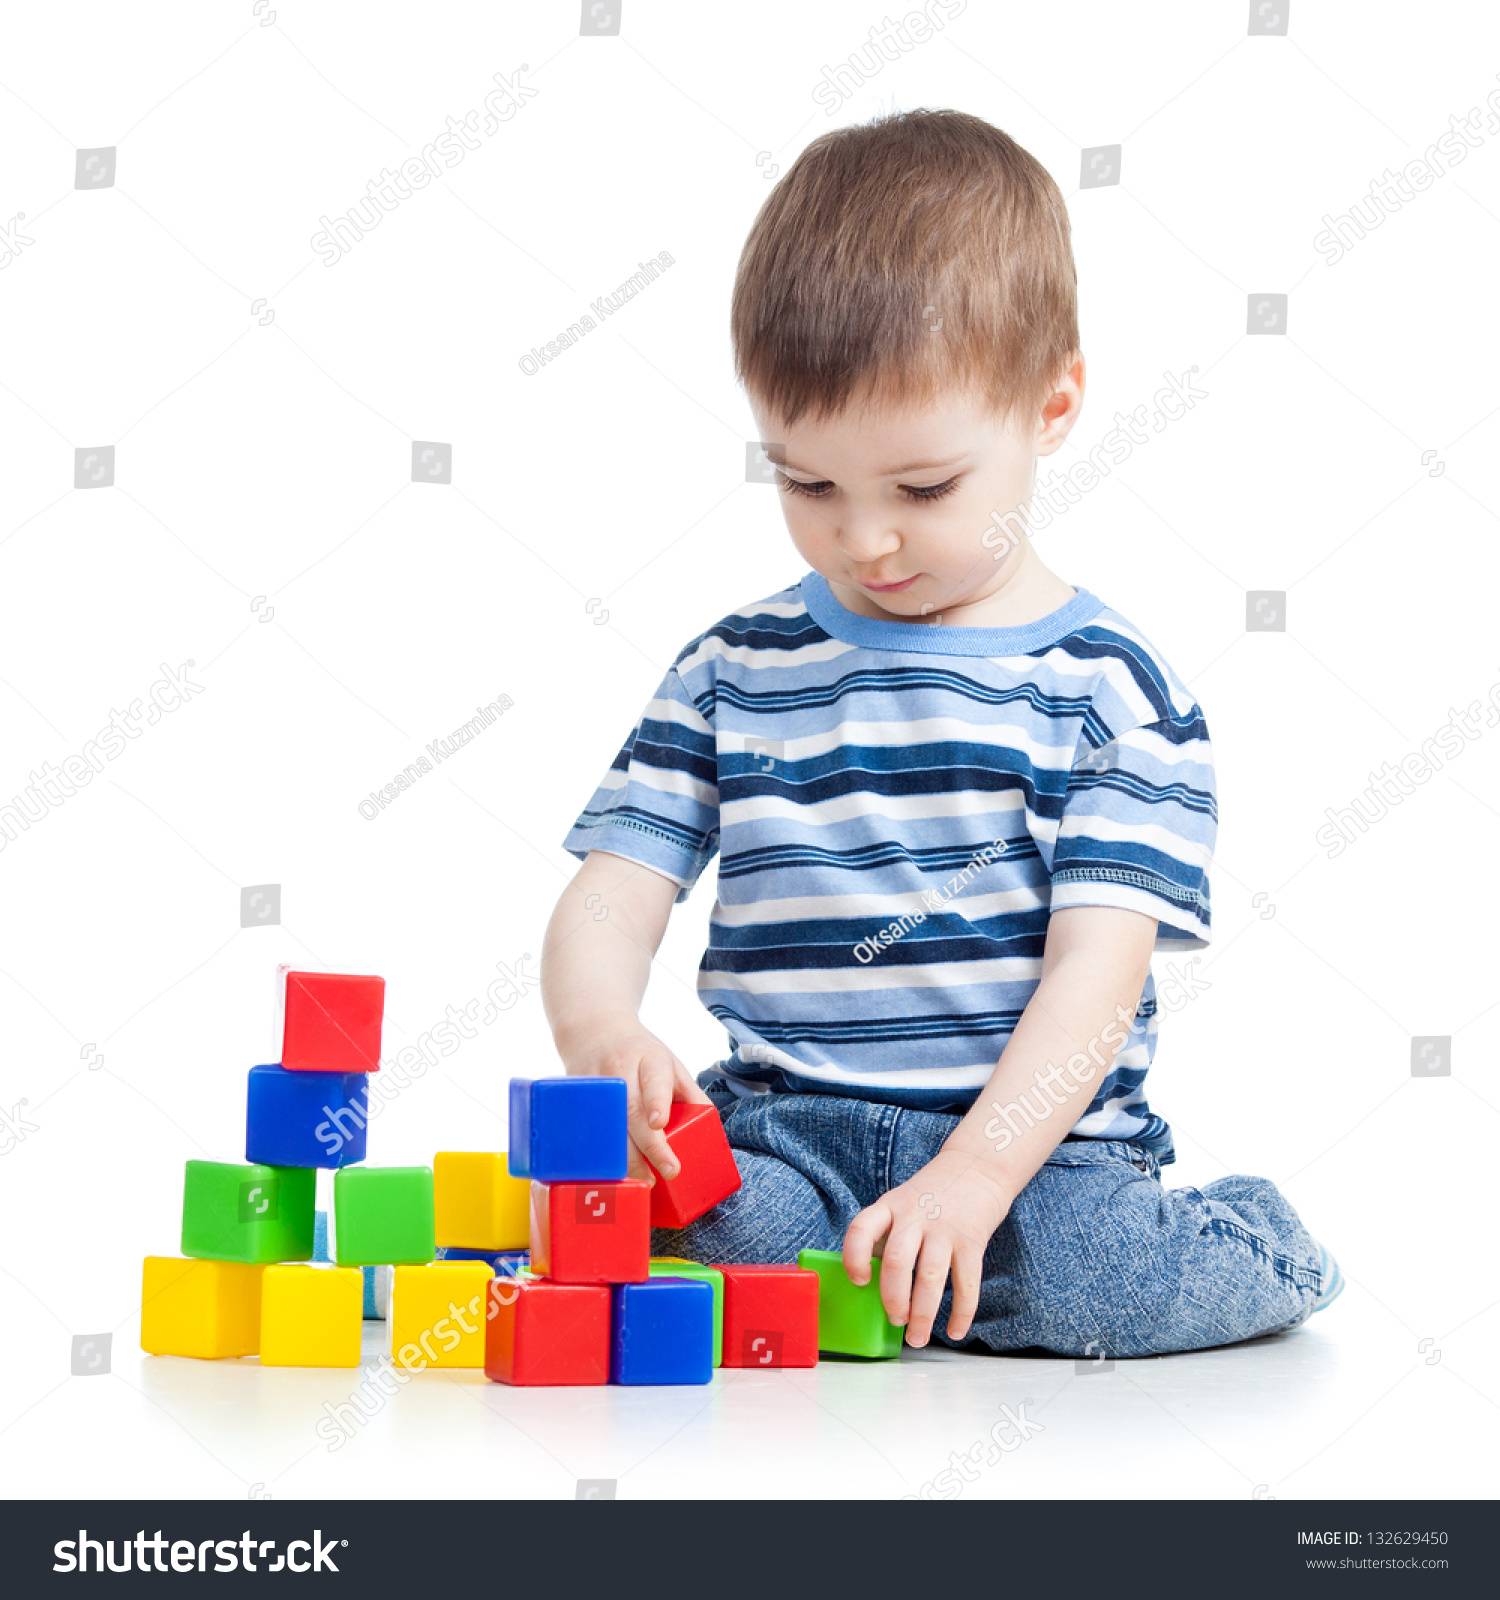 Kid Boy Playing Colorful Building Blocks Stock